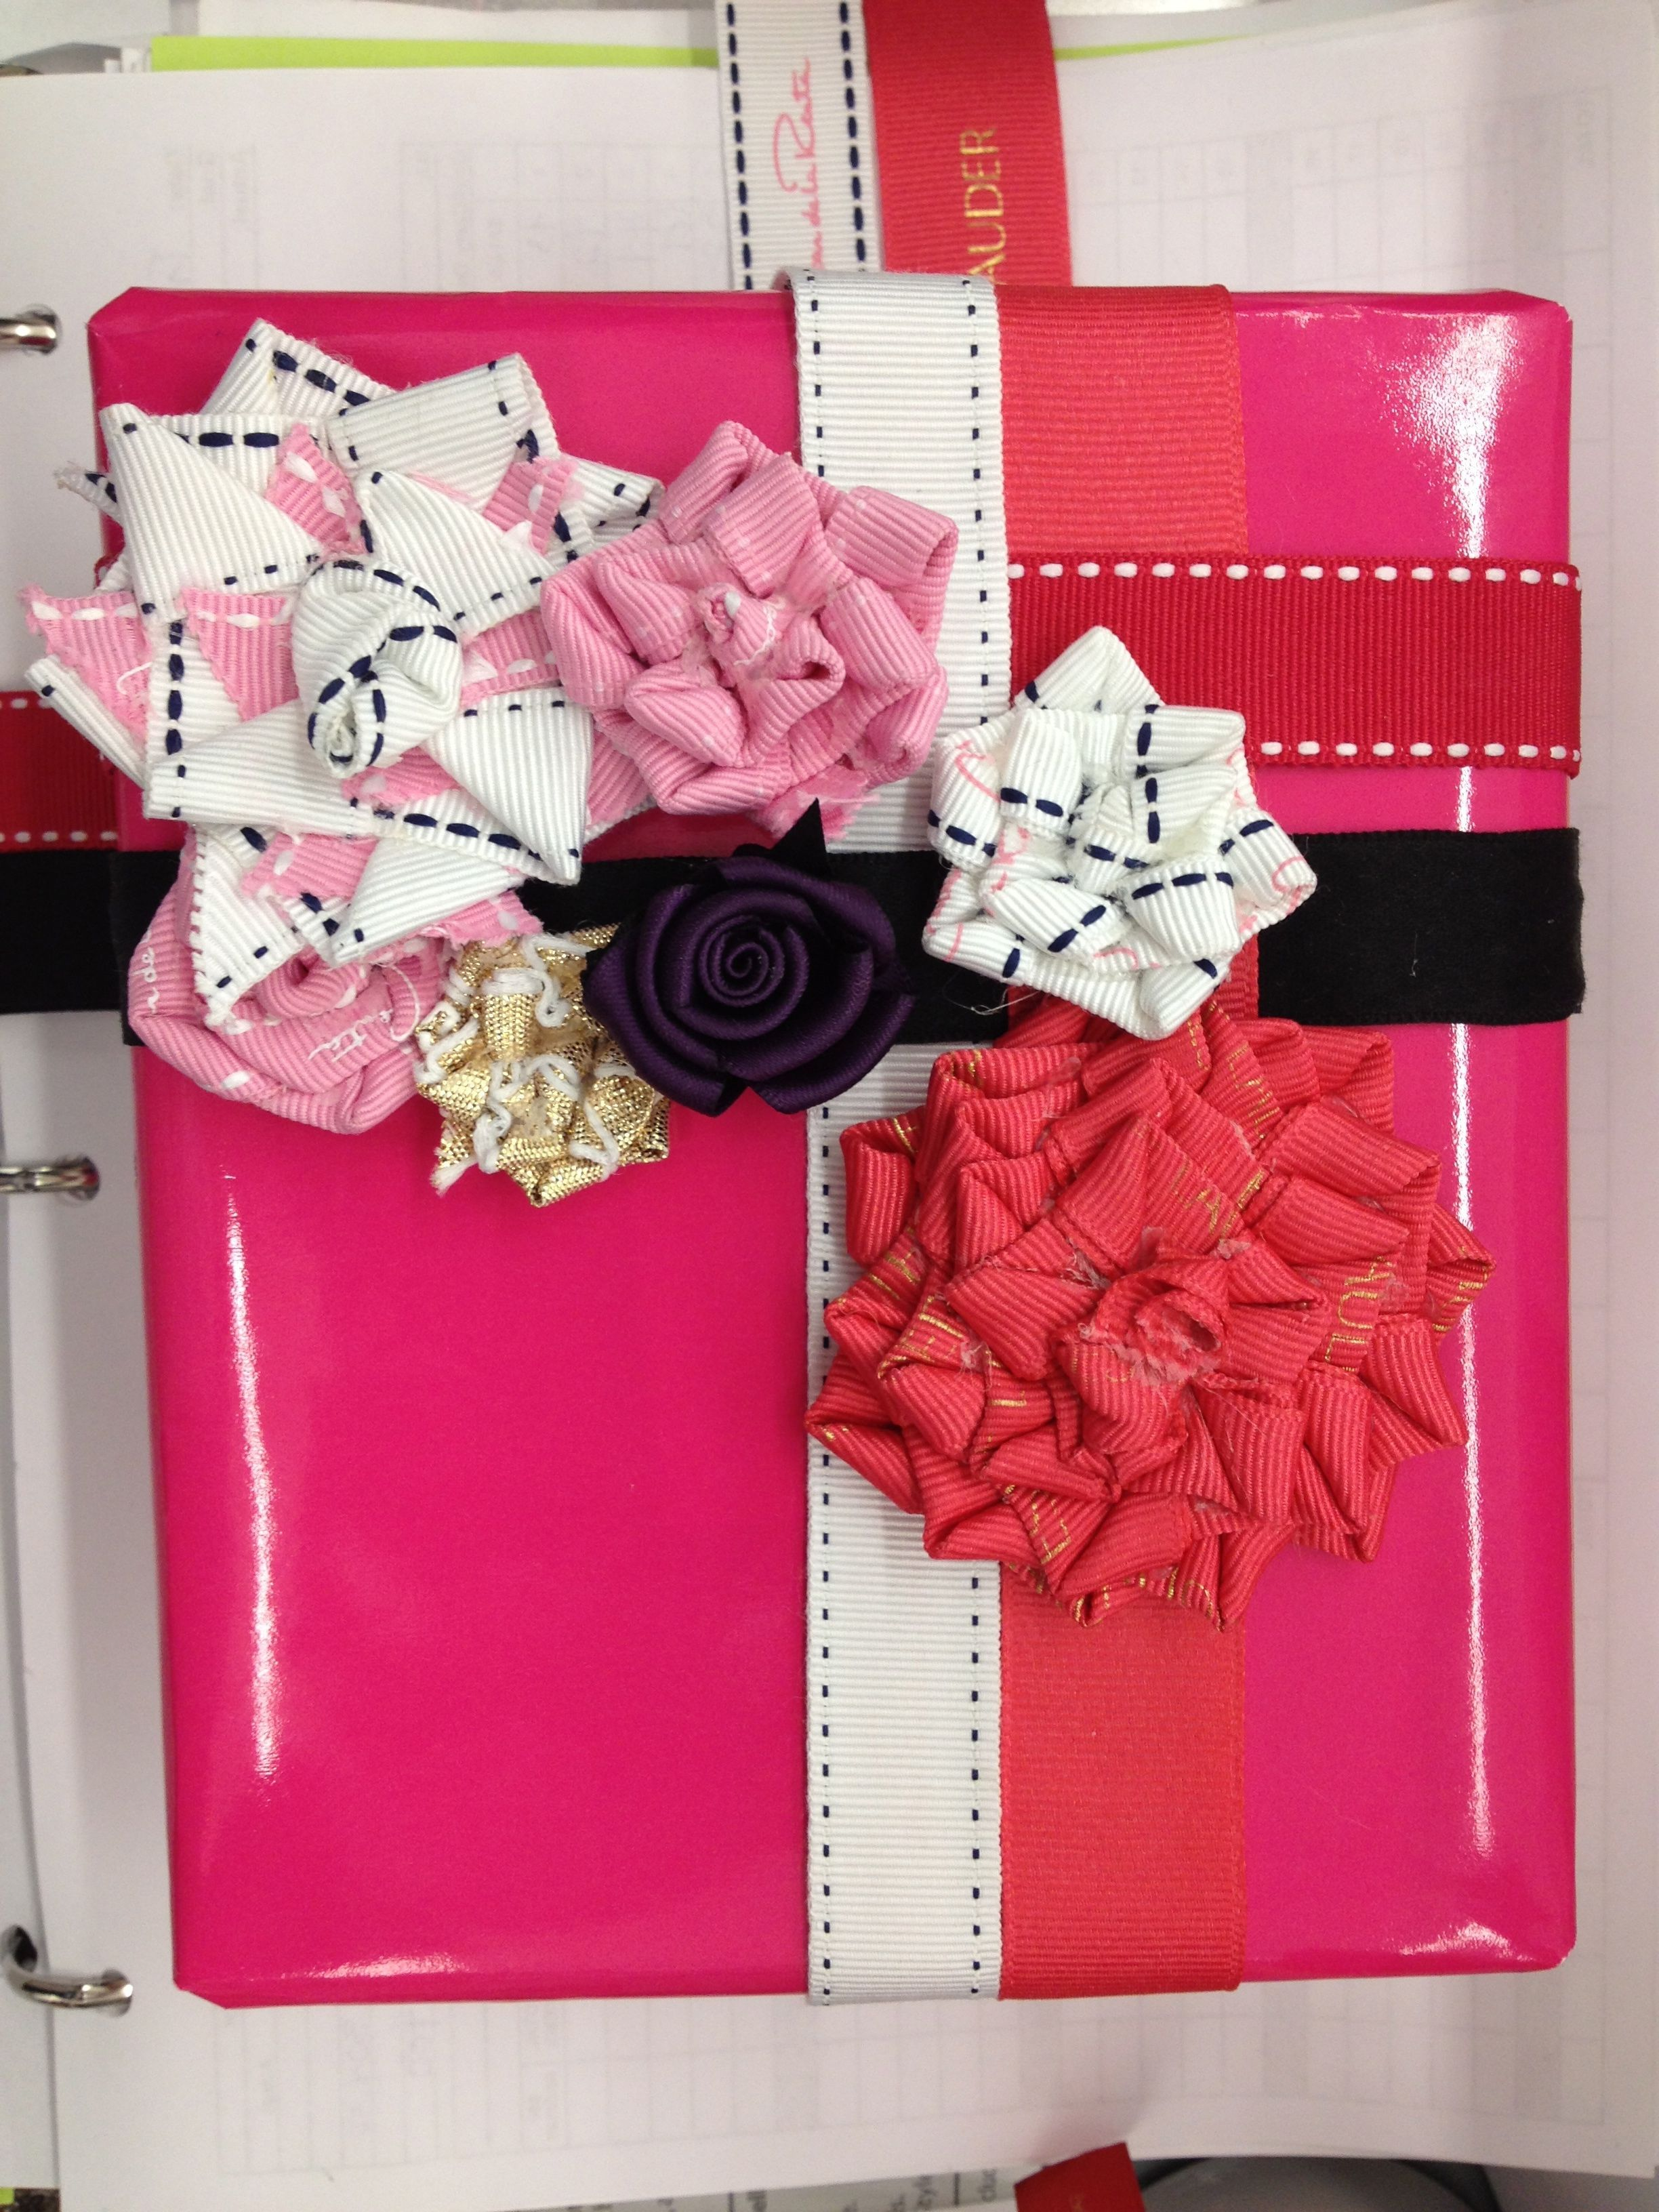 Birthday gift wrapped with roses made from twisted ribbons. The ribbons, when removed, can be used as headbands.